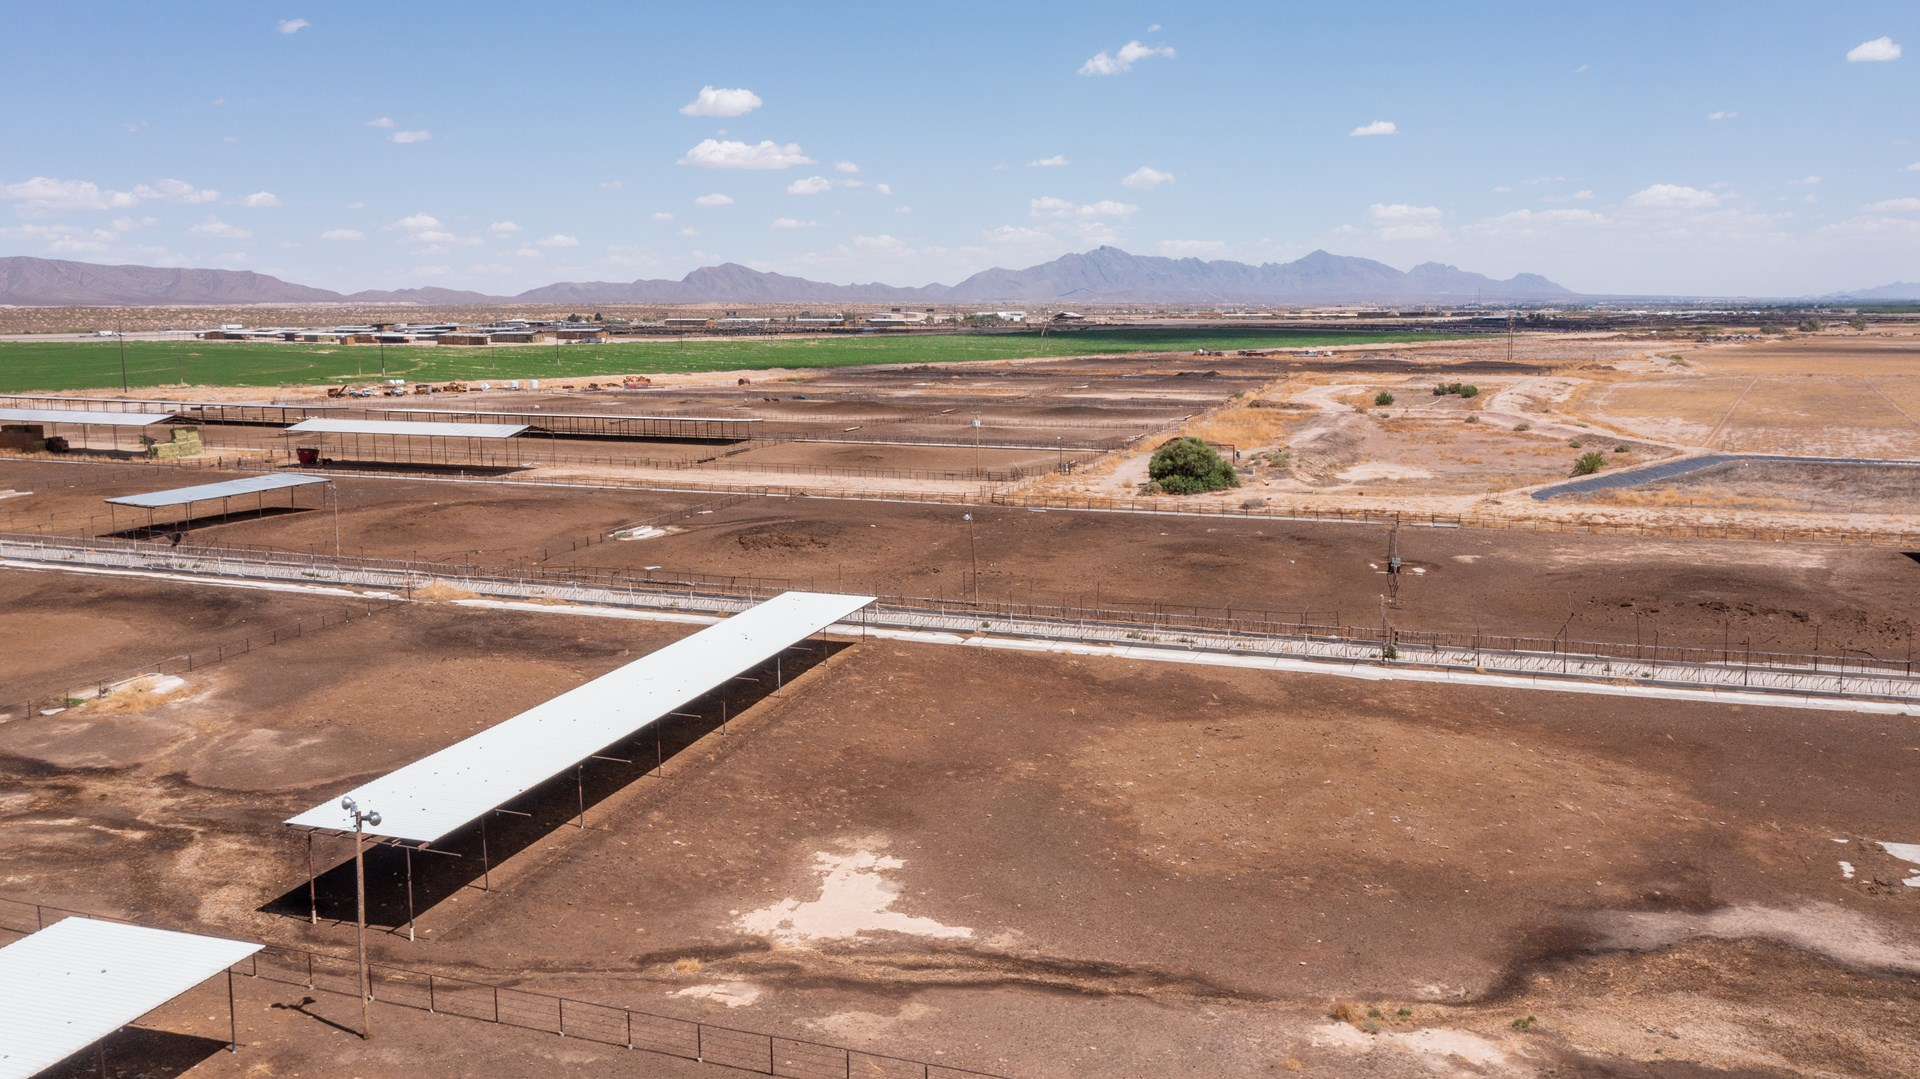 Vado, NM Cattle Pens Commercial Water Rights Industrial Land